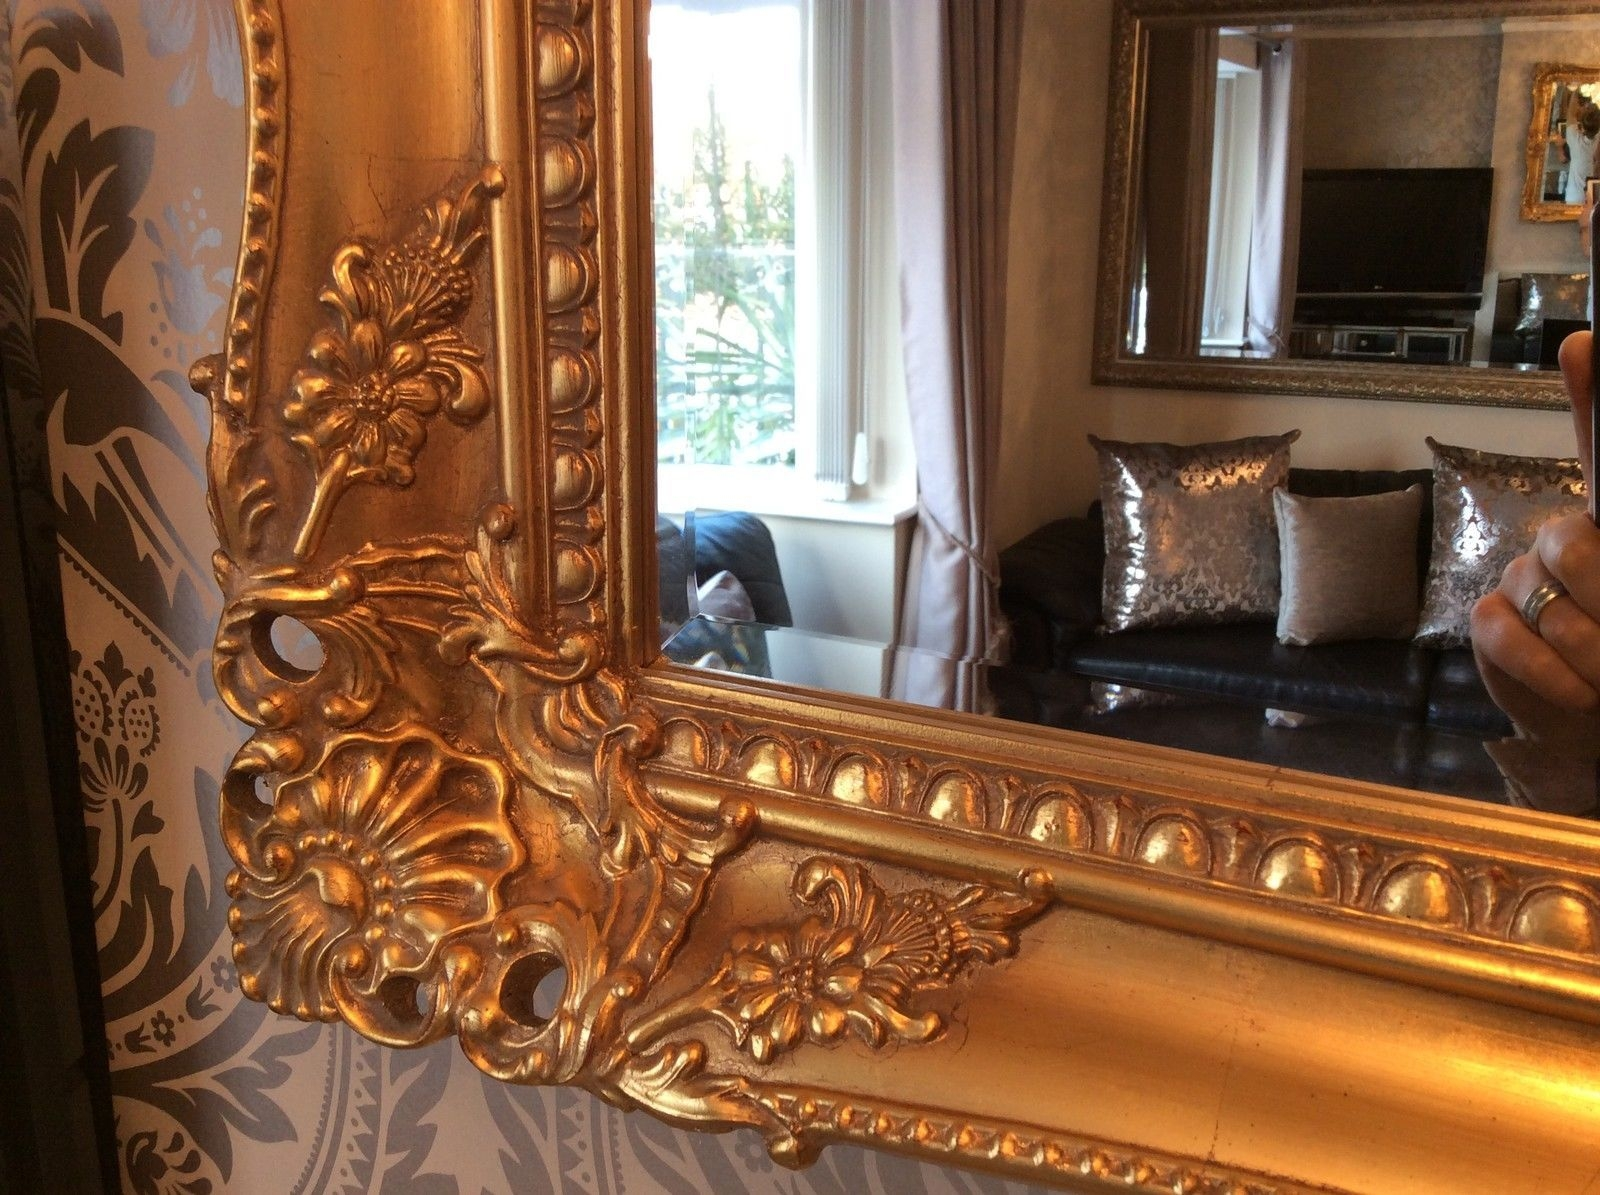 Large Gold Mirror Full Image For Large Decorative Mirror Elegant With Regard To Large Gold Ornate Mirror (Image 8 of 15)